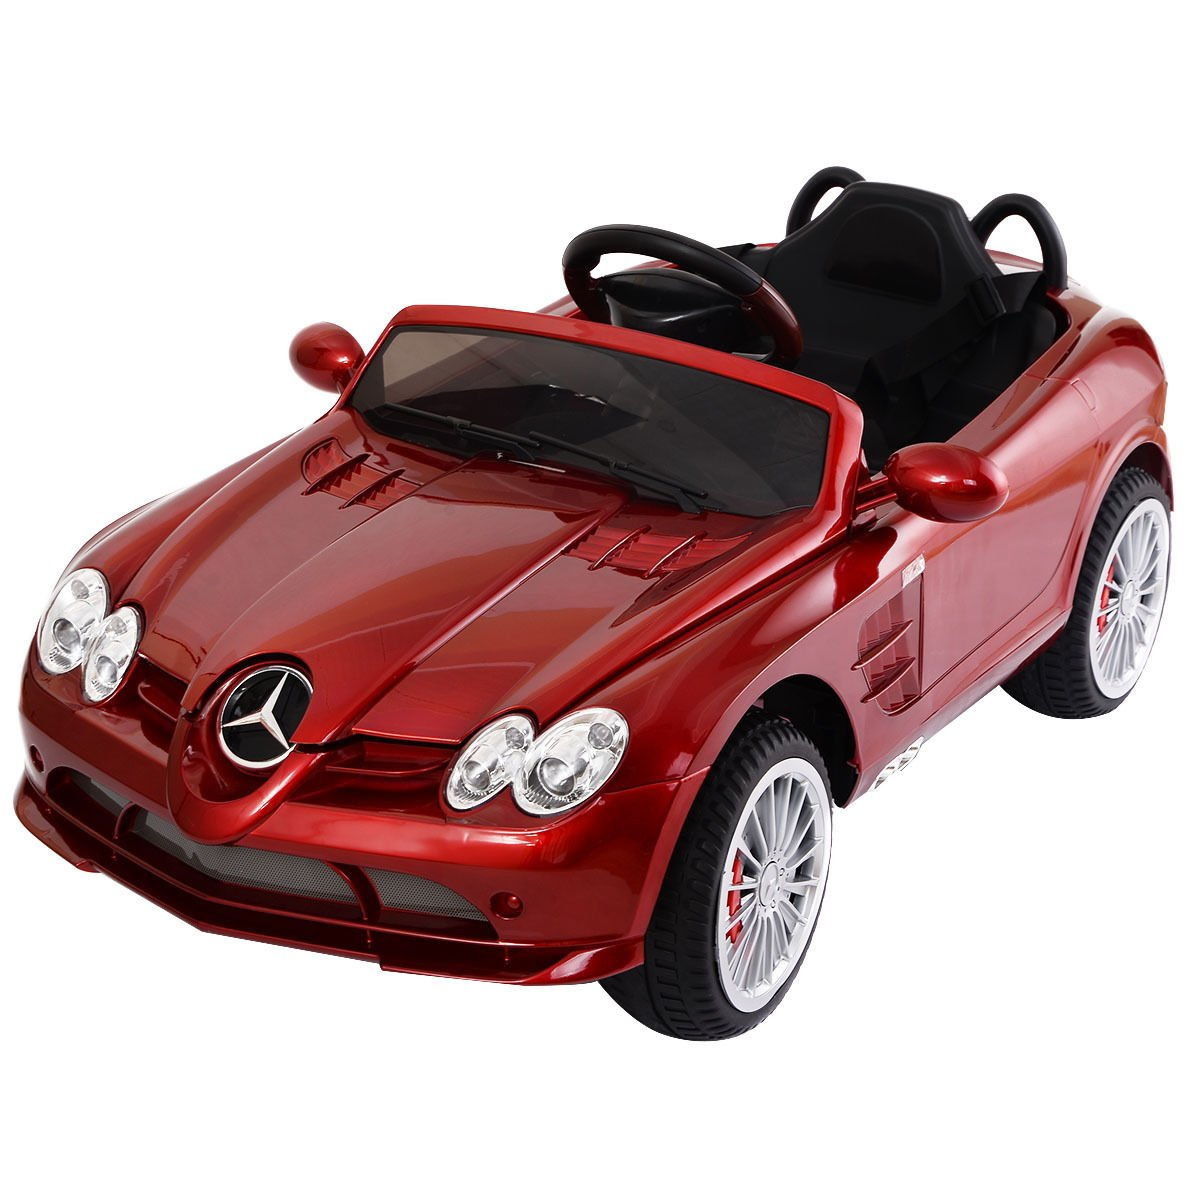 Costzon Kids Ride On Car, 12V Licensed Mercedes Benz R199, Electric Car with MP3 Remote Control (Red) by Costzon